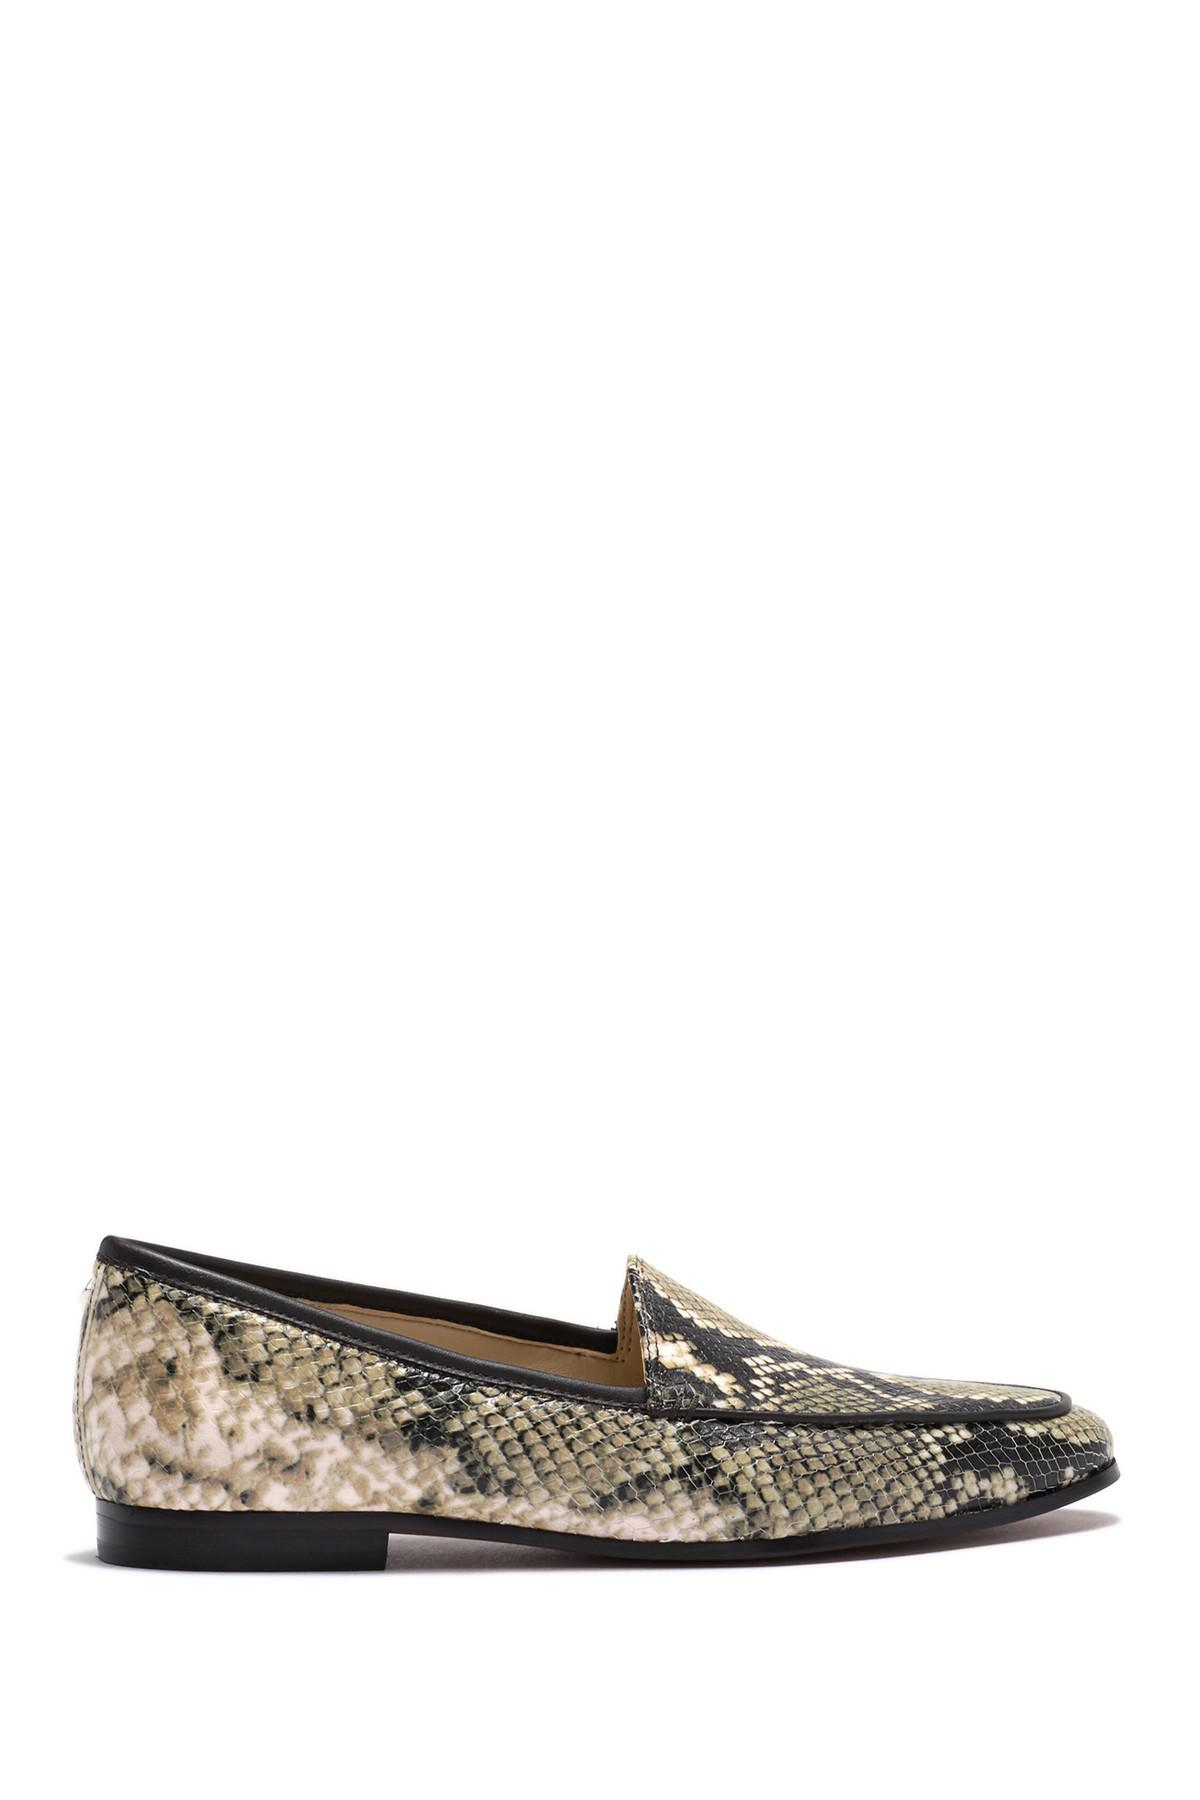 44a718c28c3 Lyst - Sam Edelman Leon Embossed Snake Leather Loafer in Black